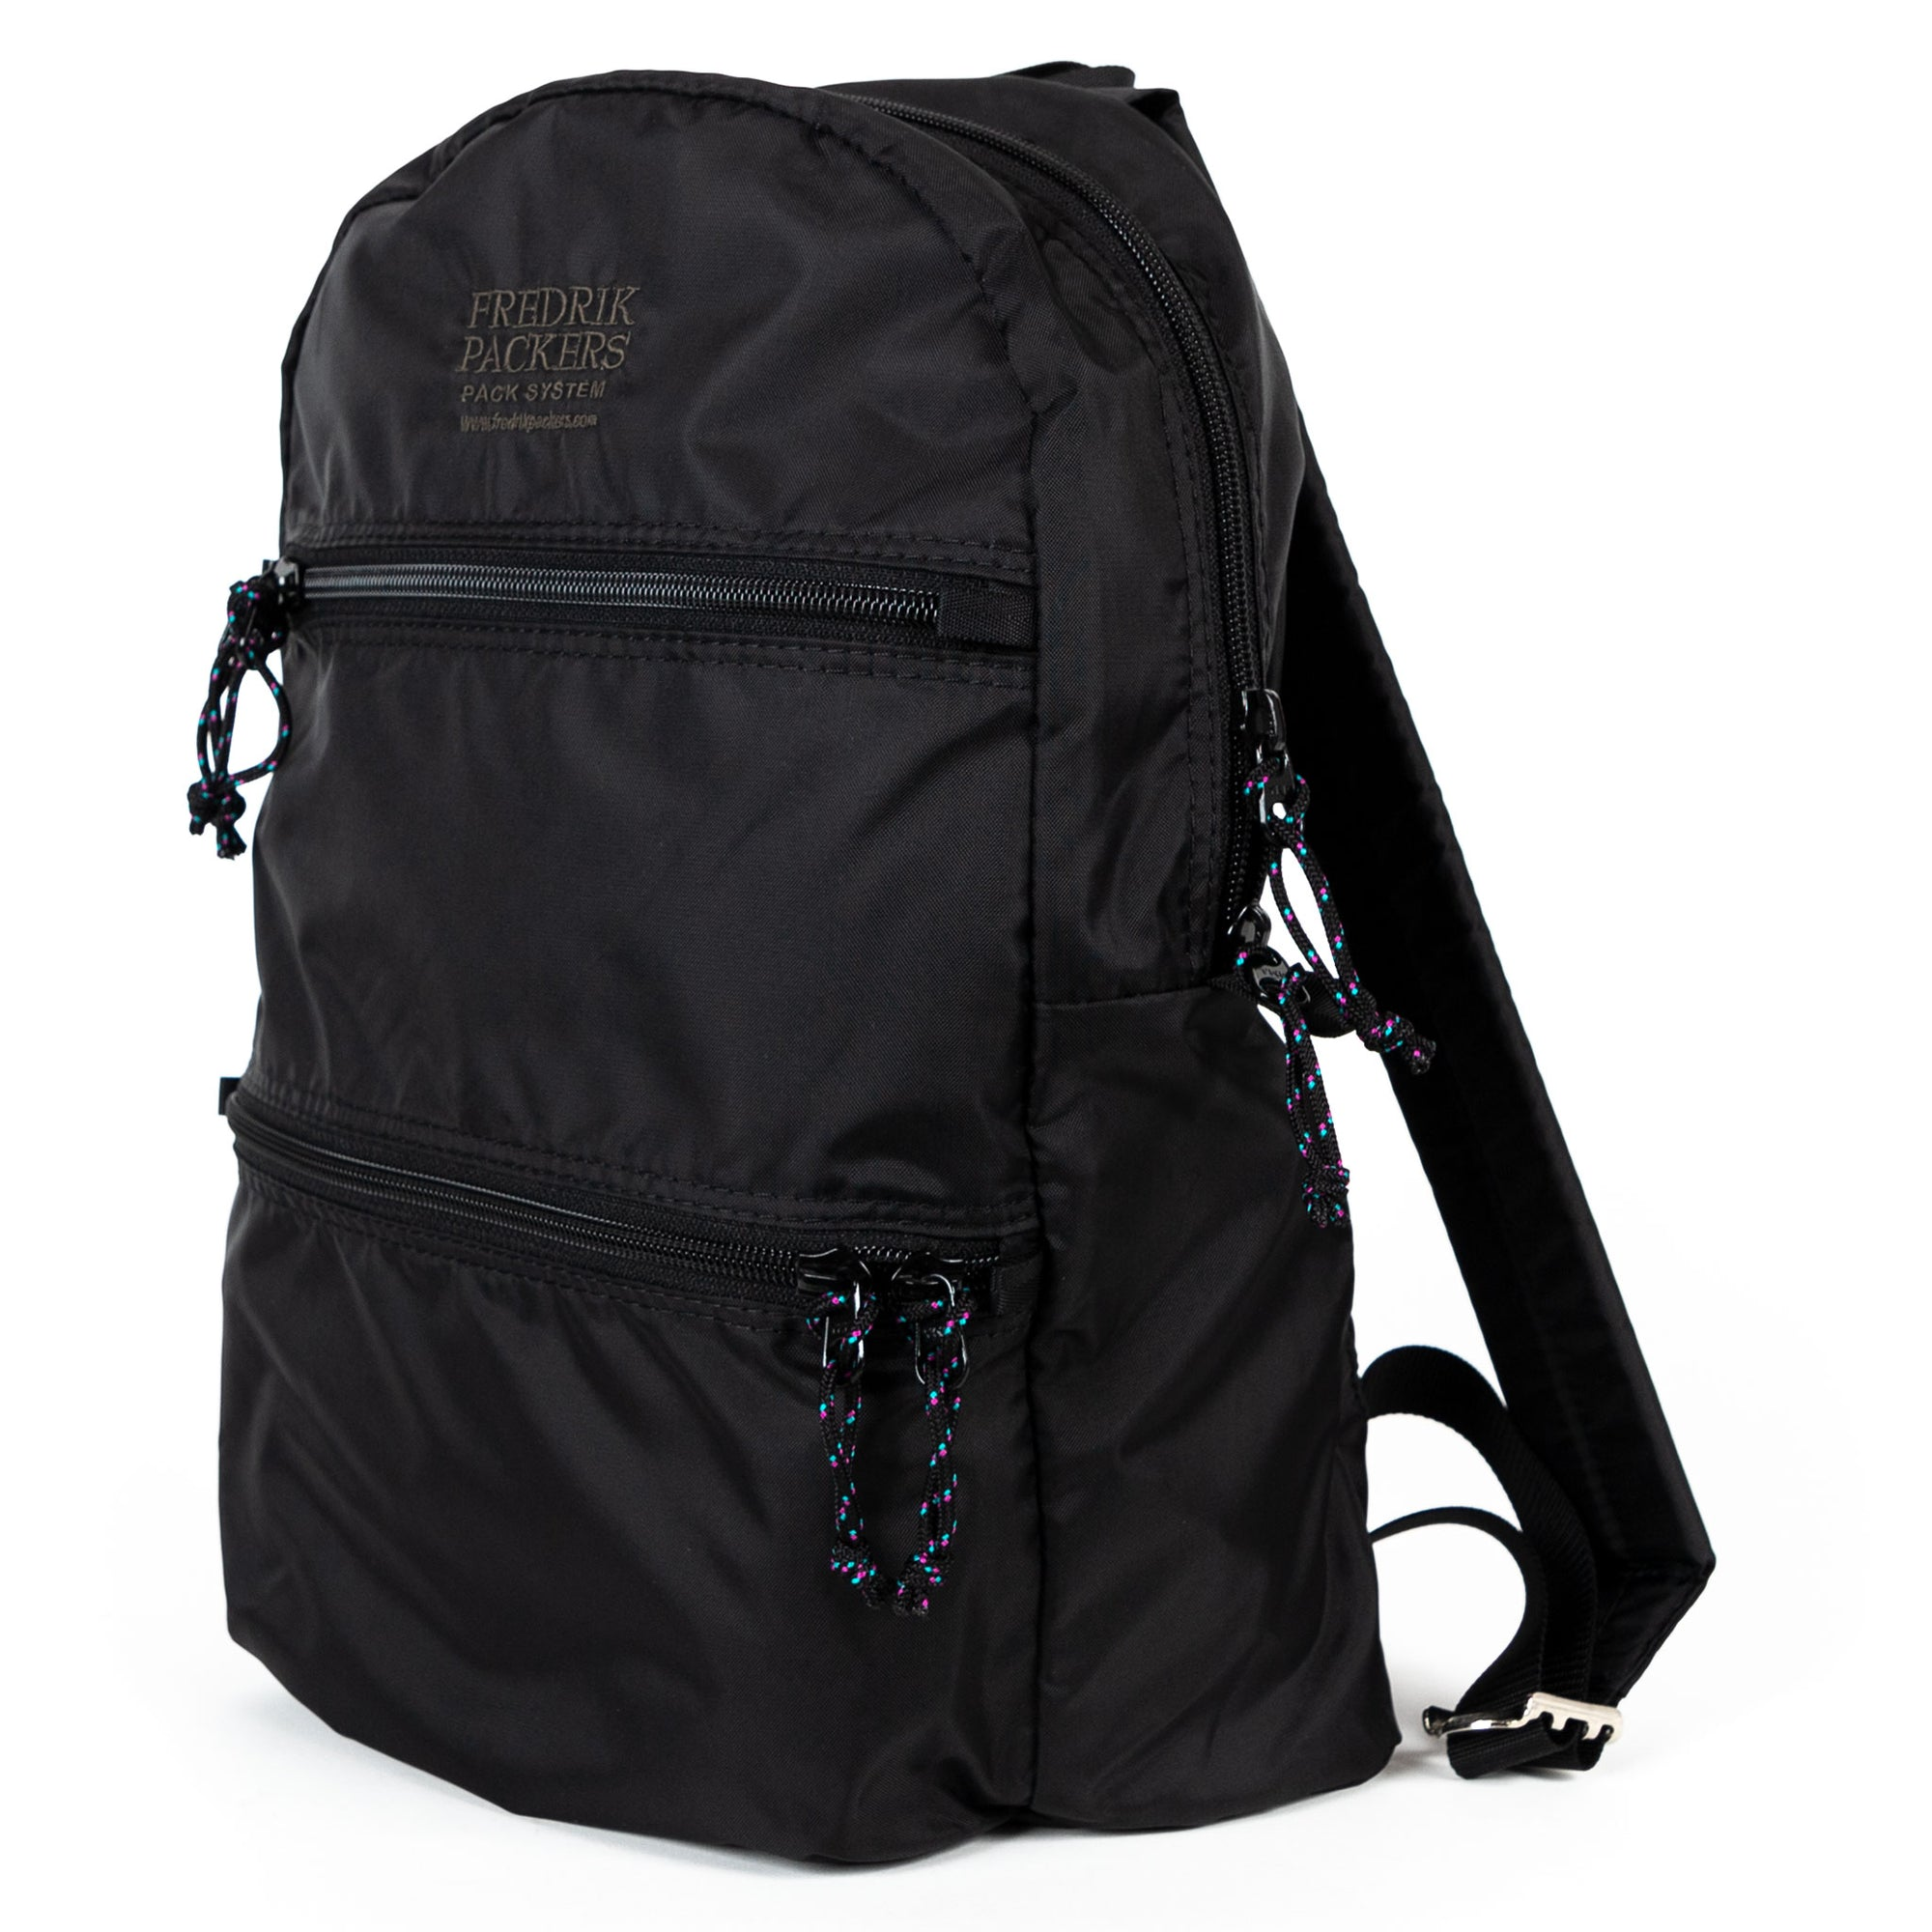 fredrik packers double zip backpack in black